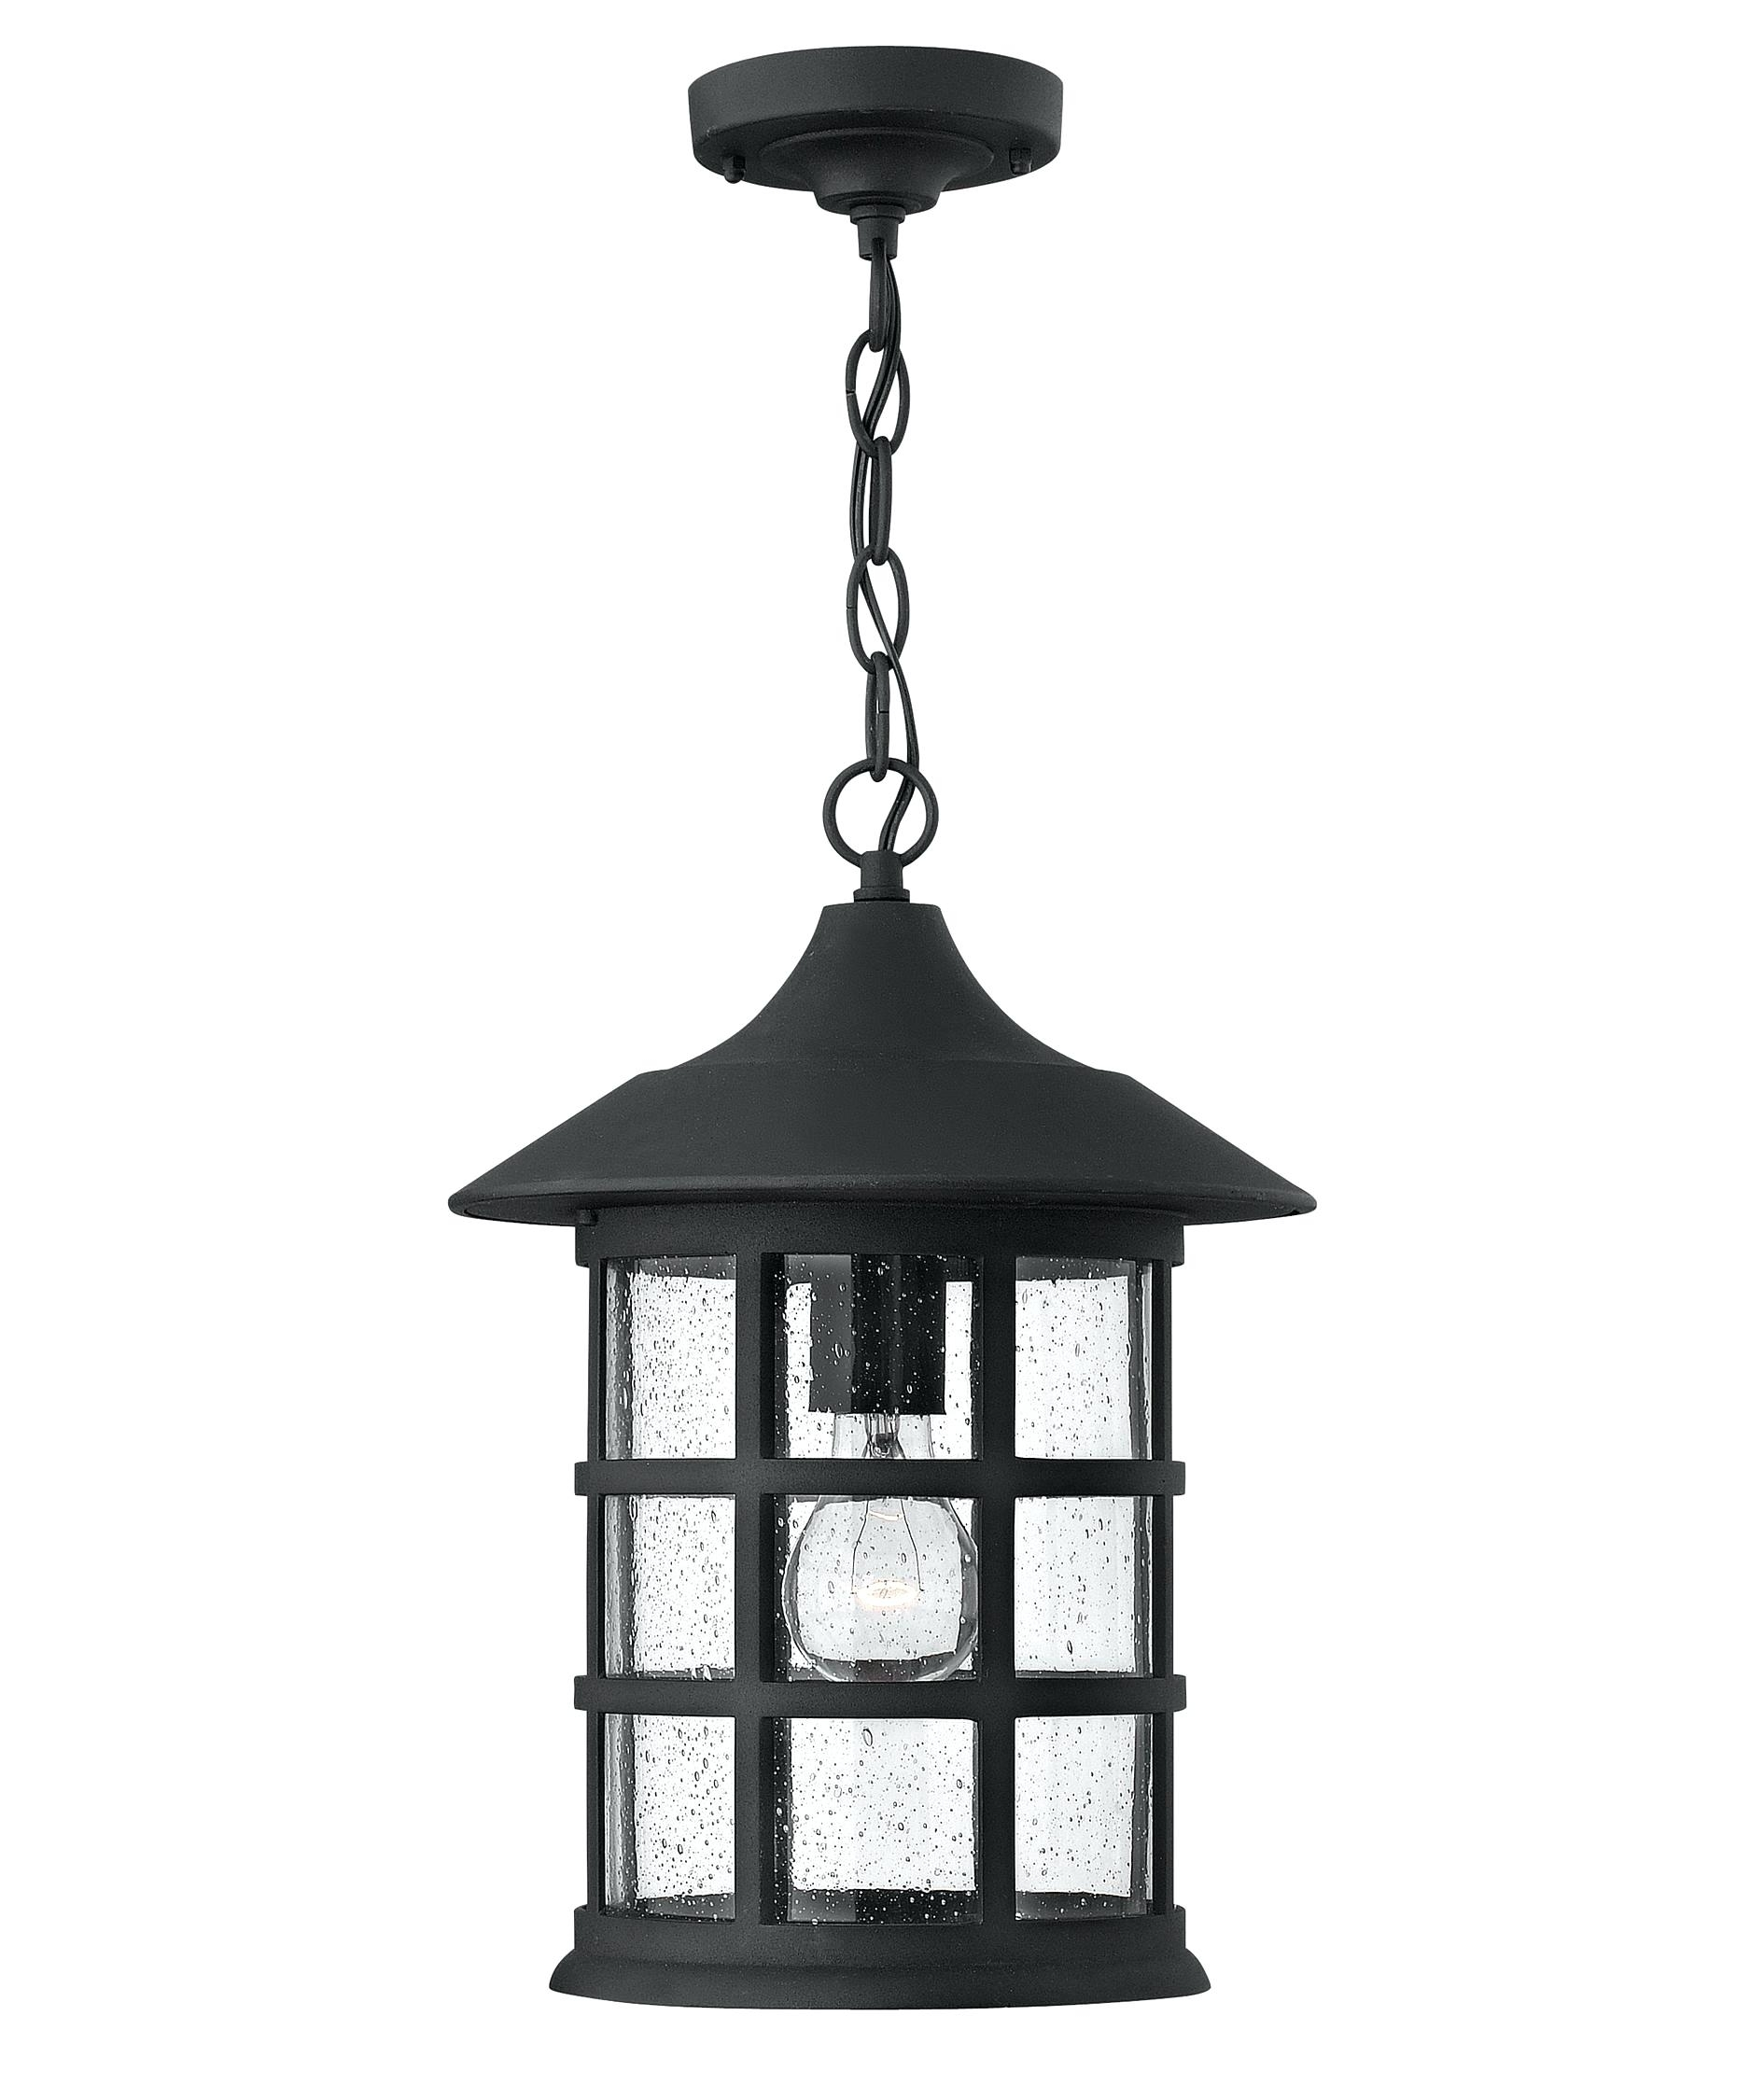 Large Outdoor Hanging Lantern Fish Extra Lights Pendant Patio Regarding Outdoor Hanging Lanterns For Candles (#8 of 15)